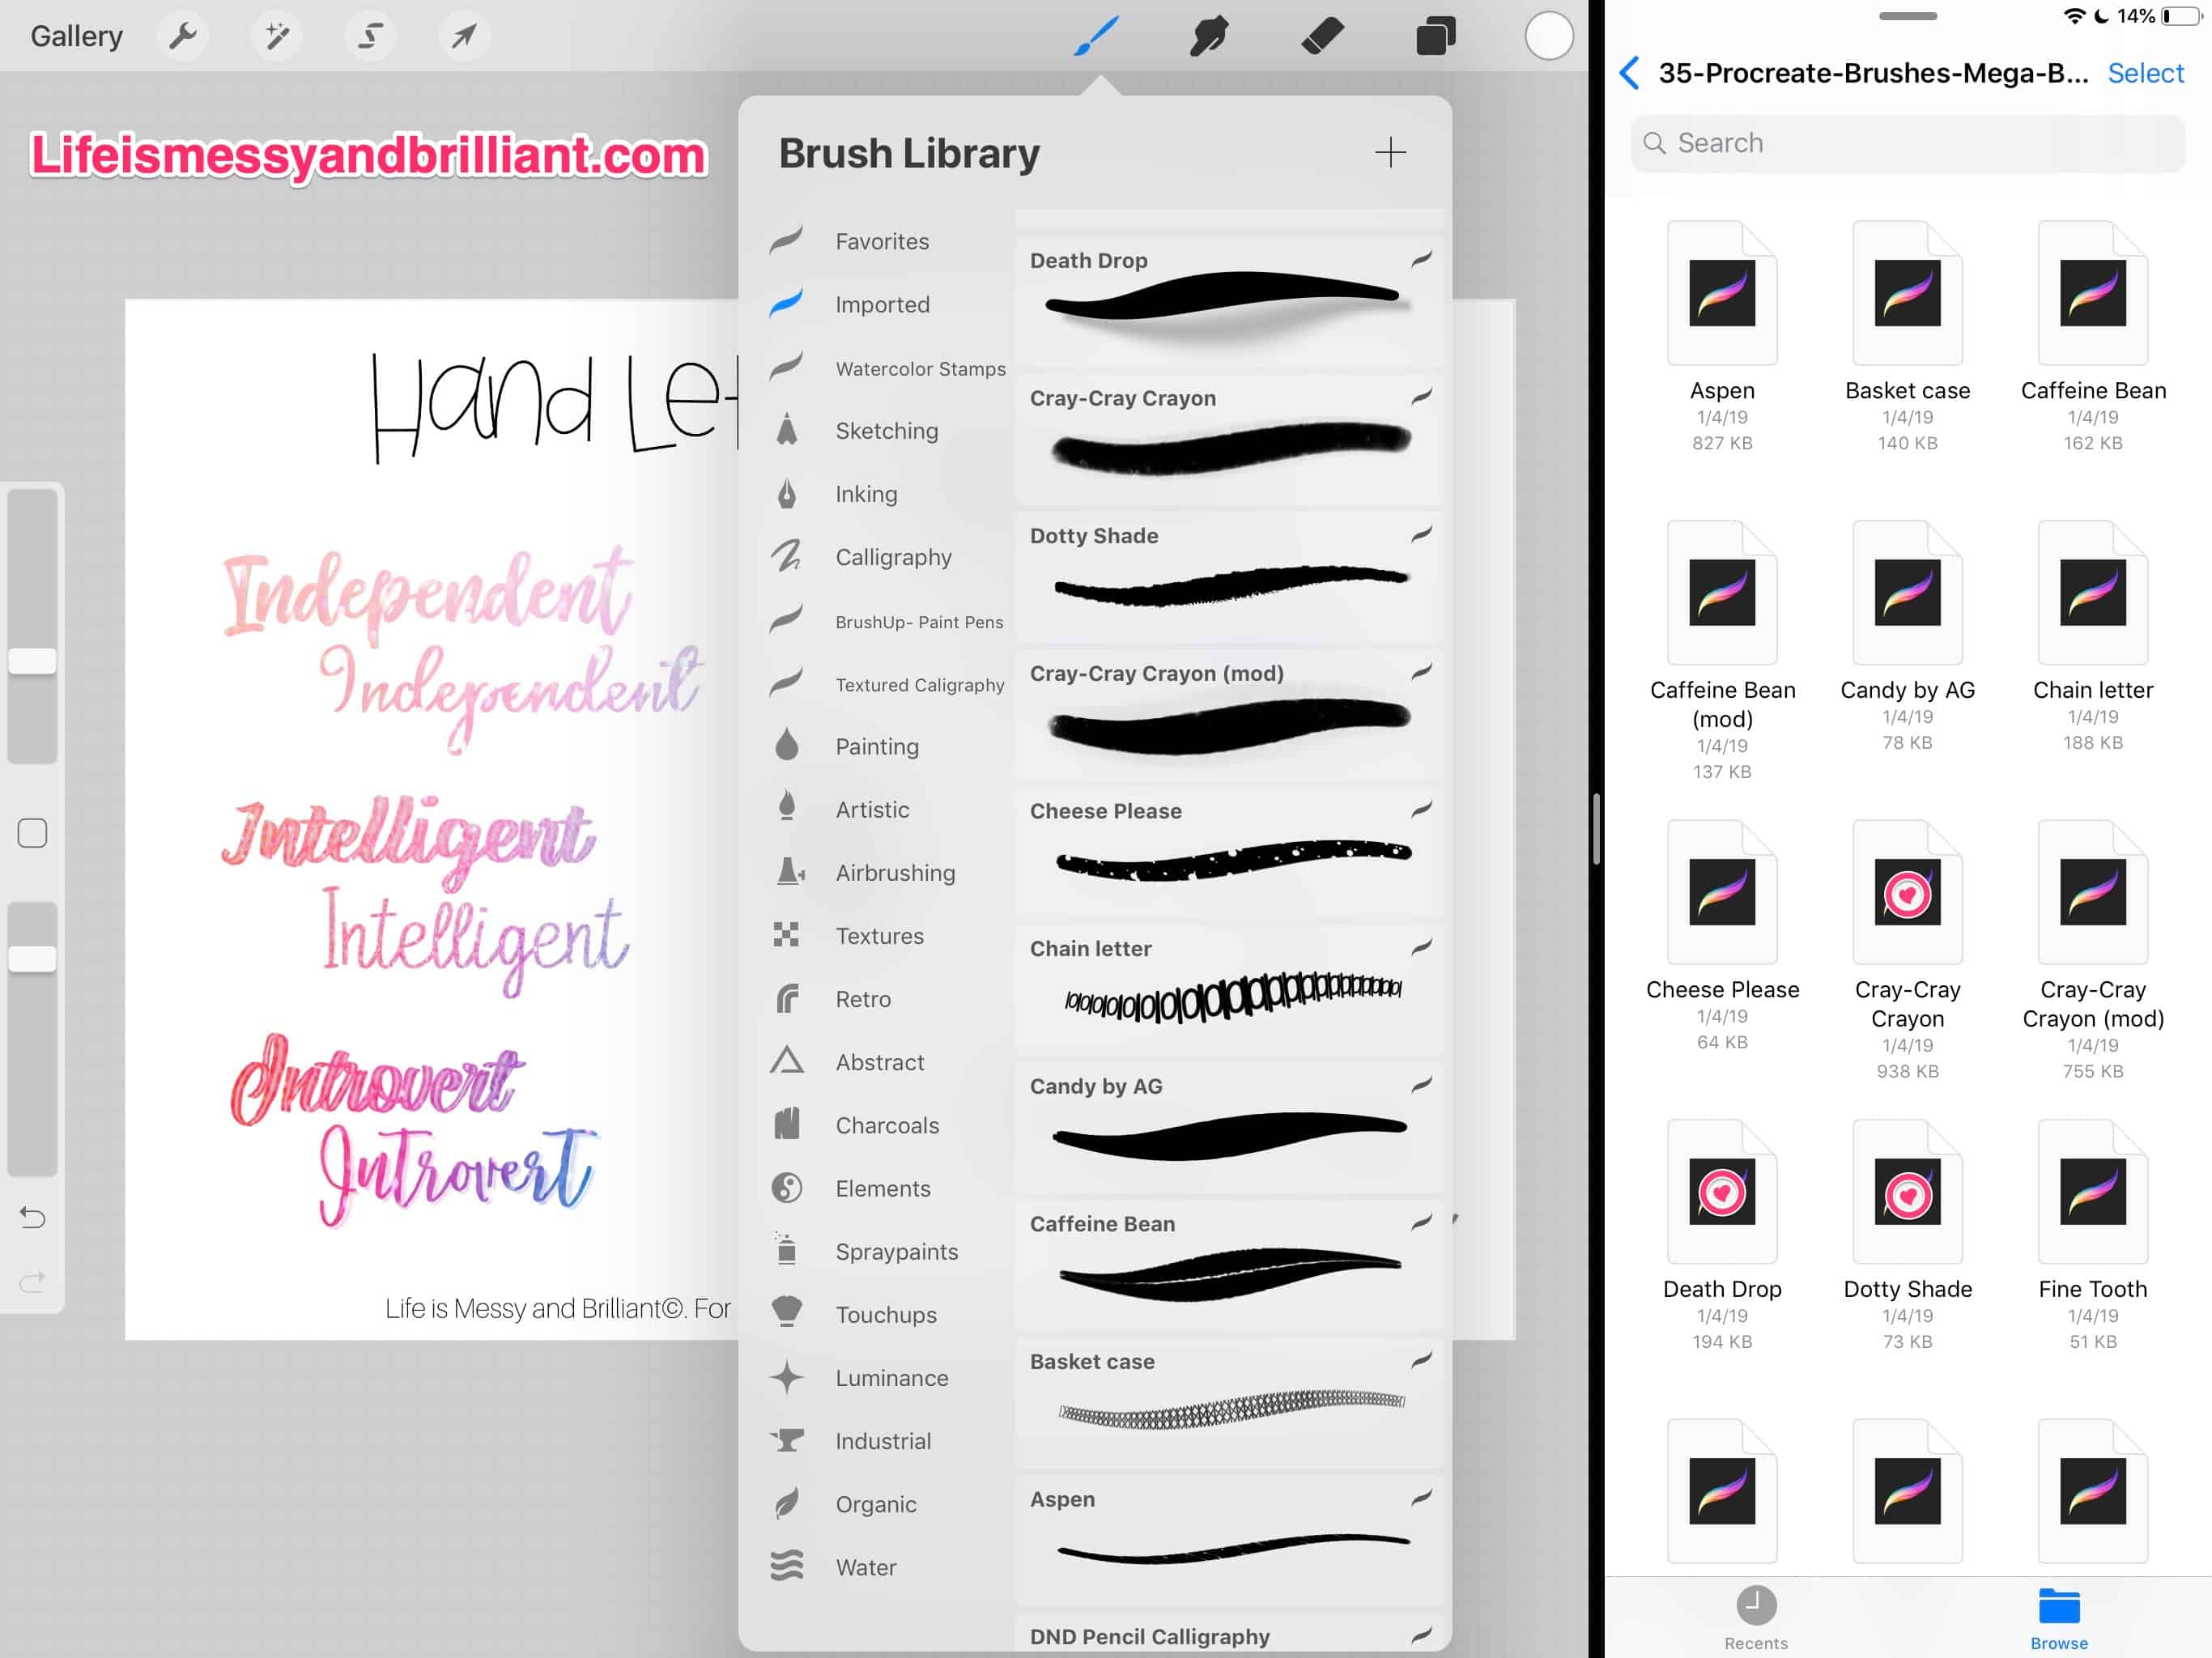 How to Import Pictures and Brushes into the Procreate iPad App